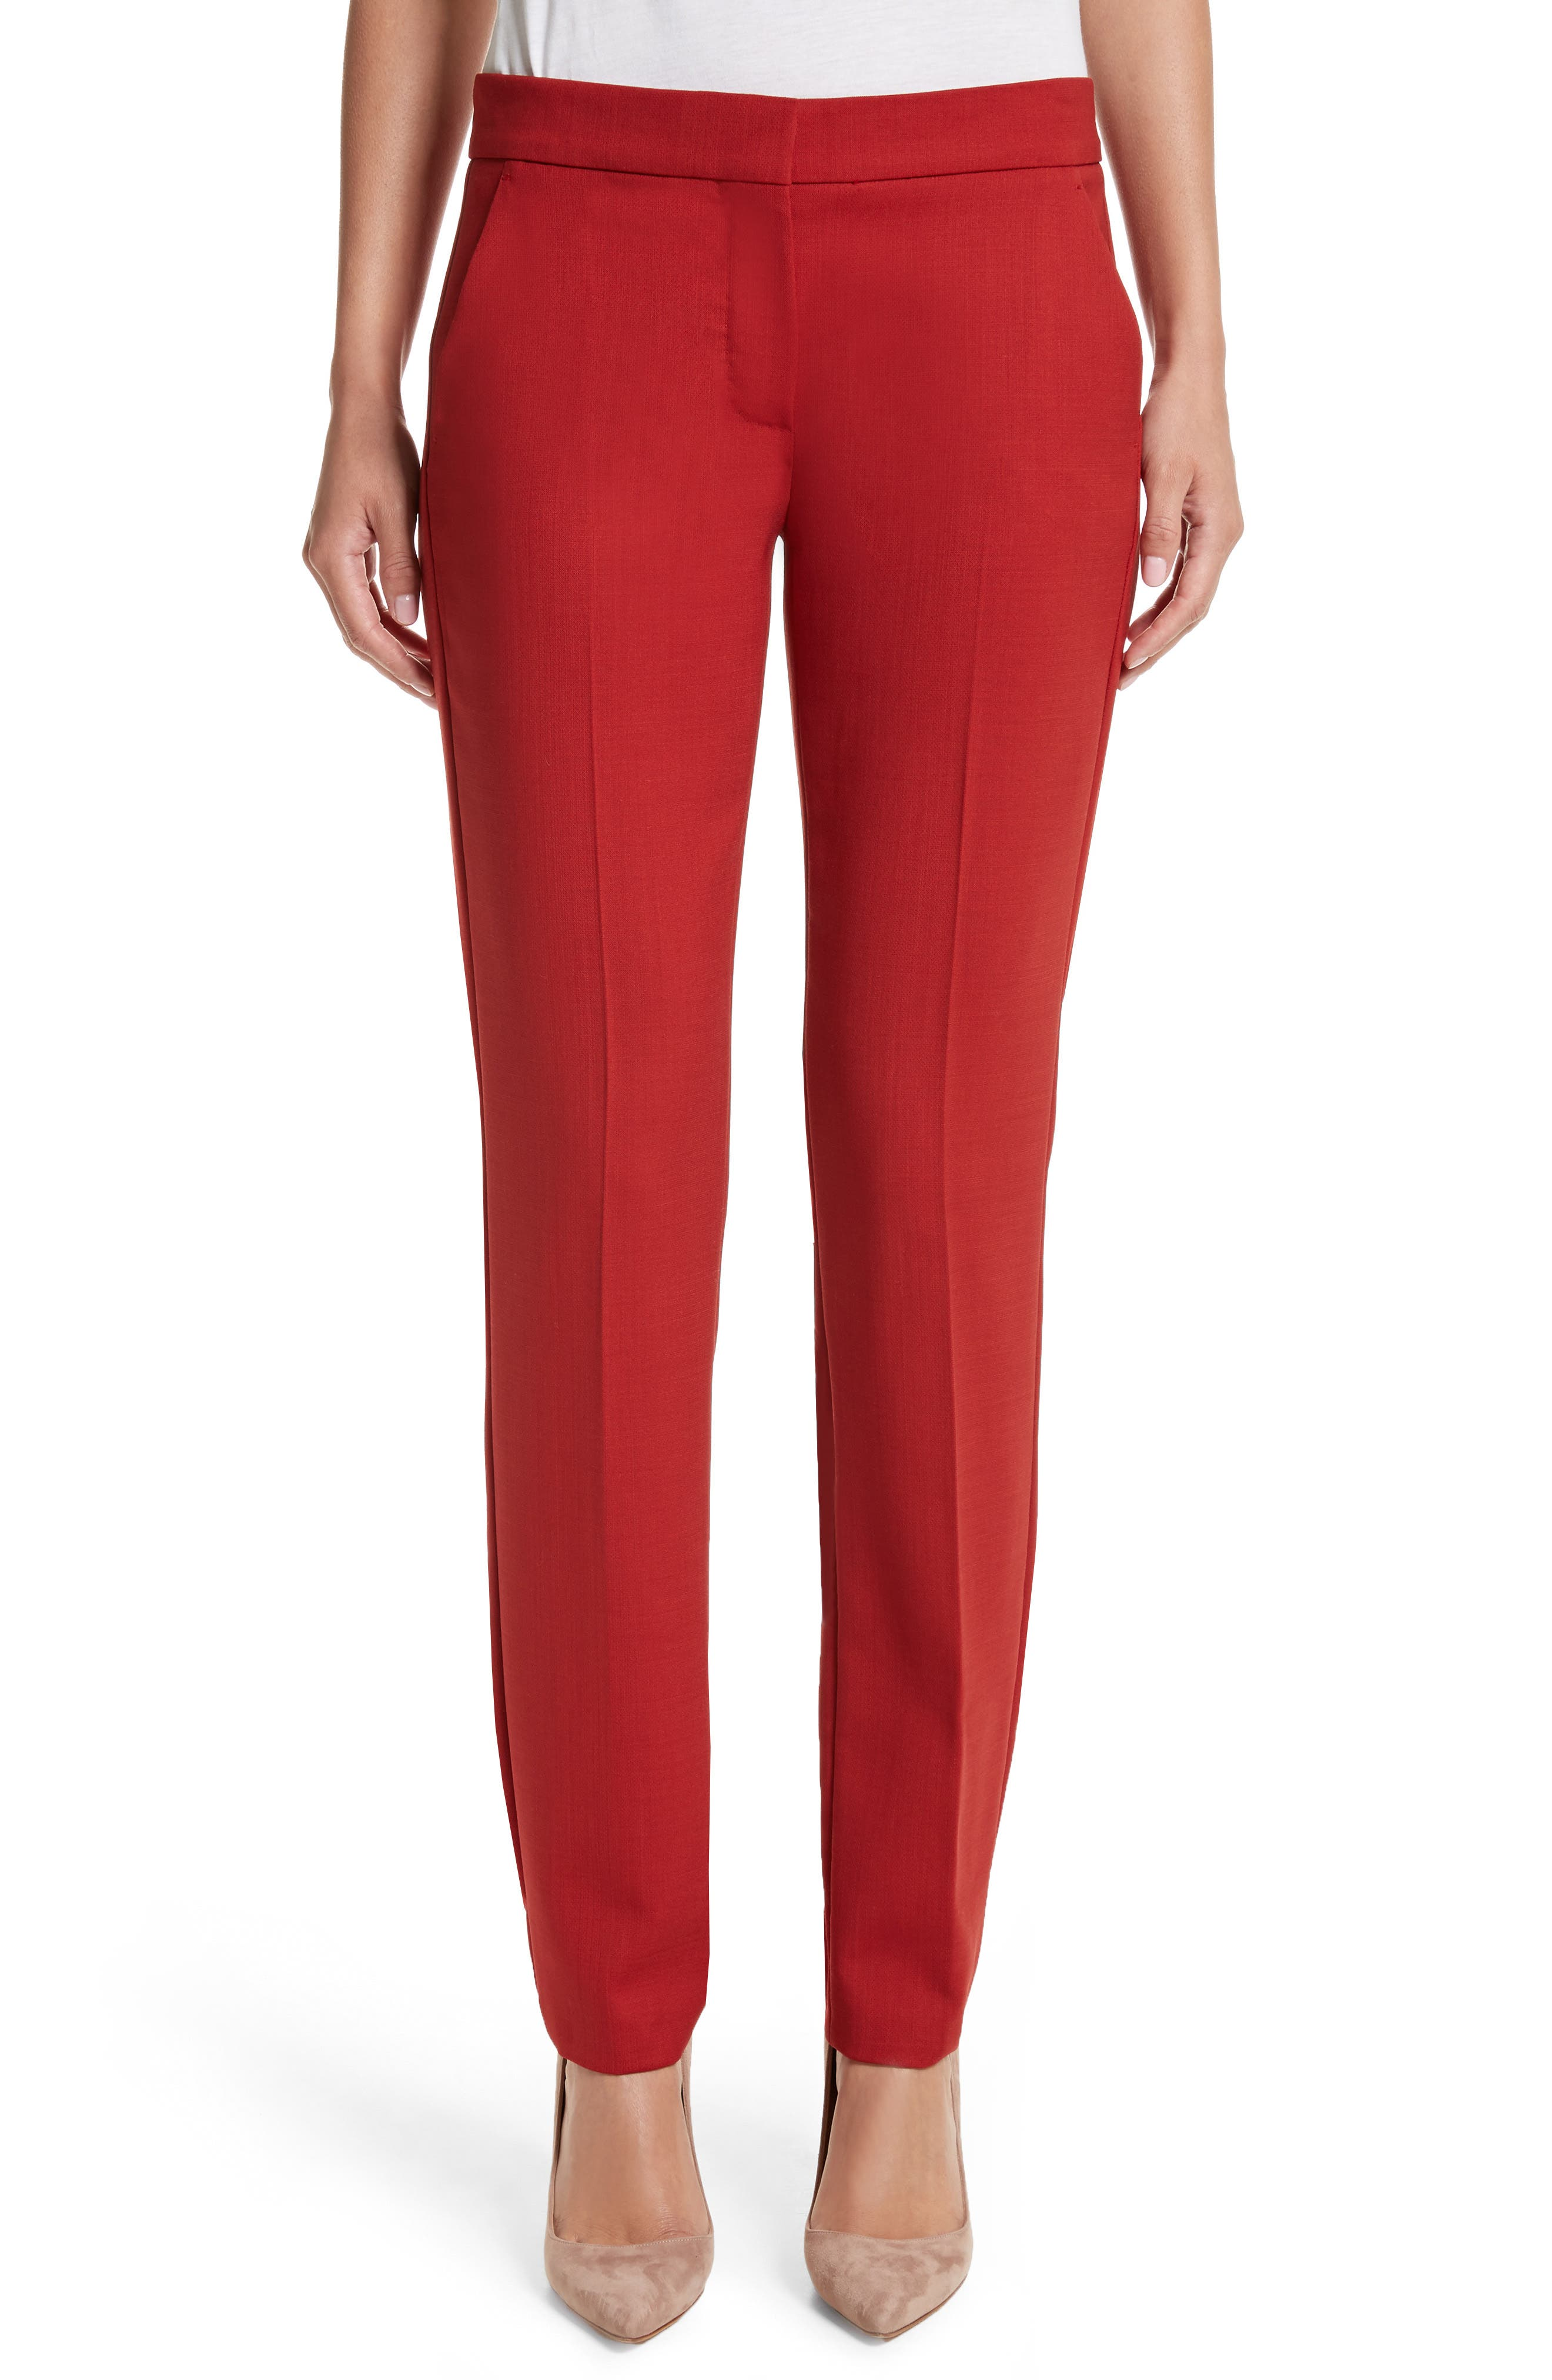 Alternate Image 1 Selected - Max Mara Oscuro Stretch Wool Pants